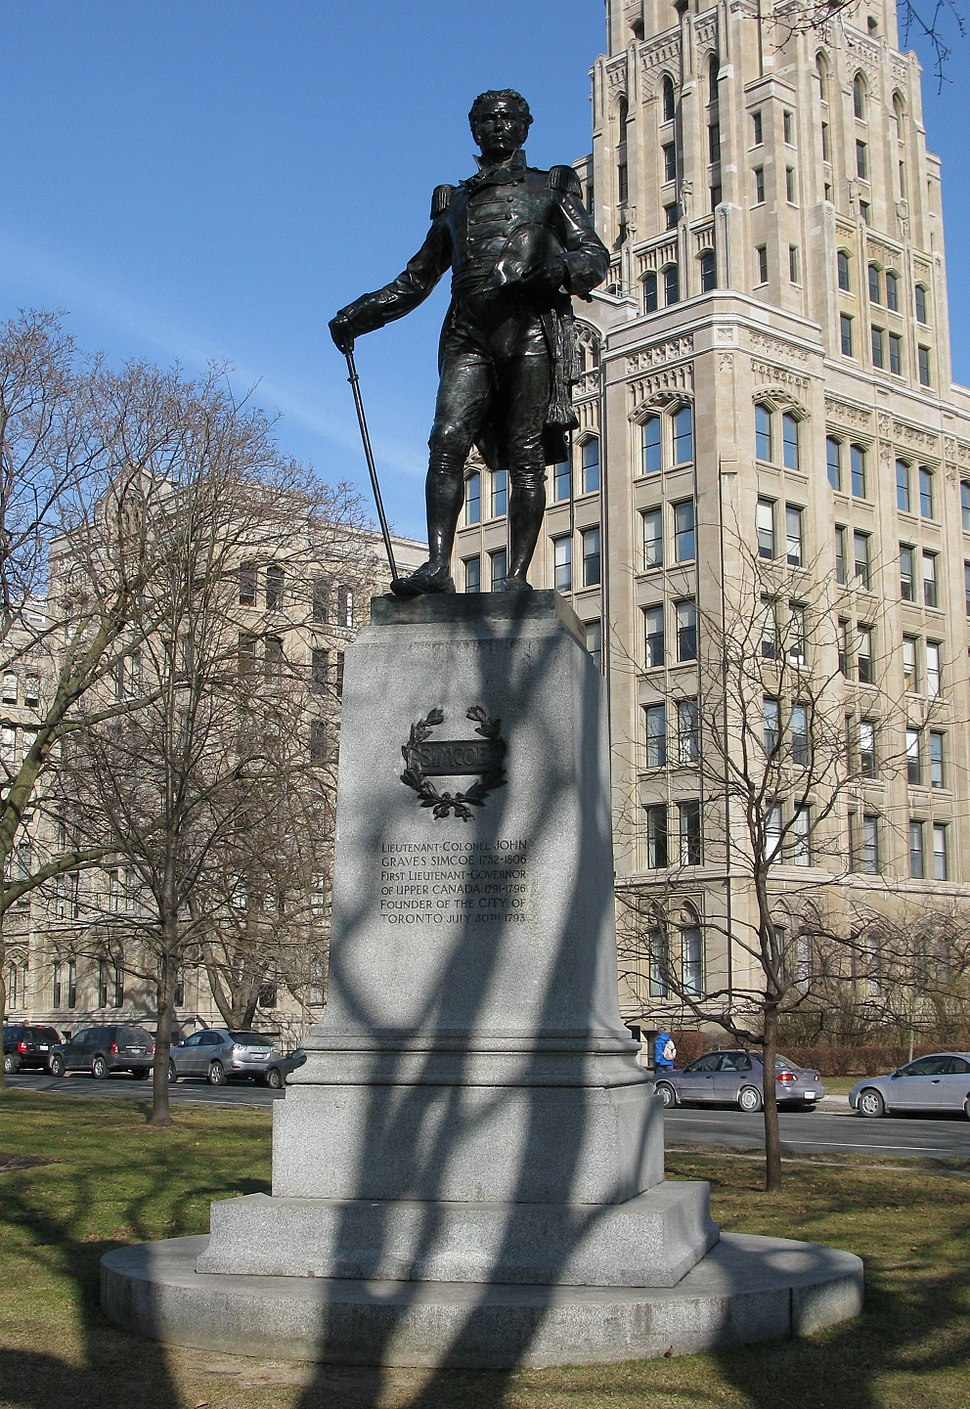 John Graves Simcoe statue at Queens Park